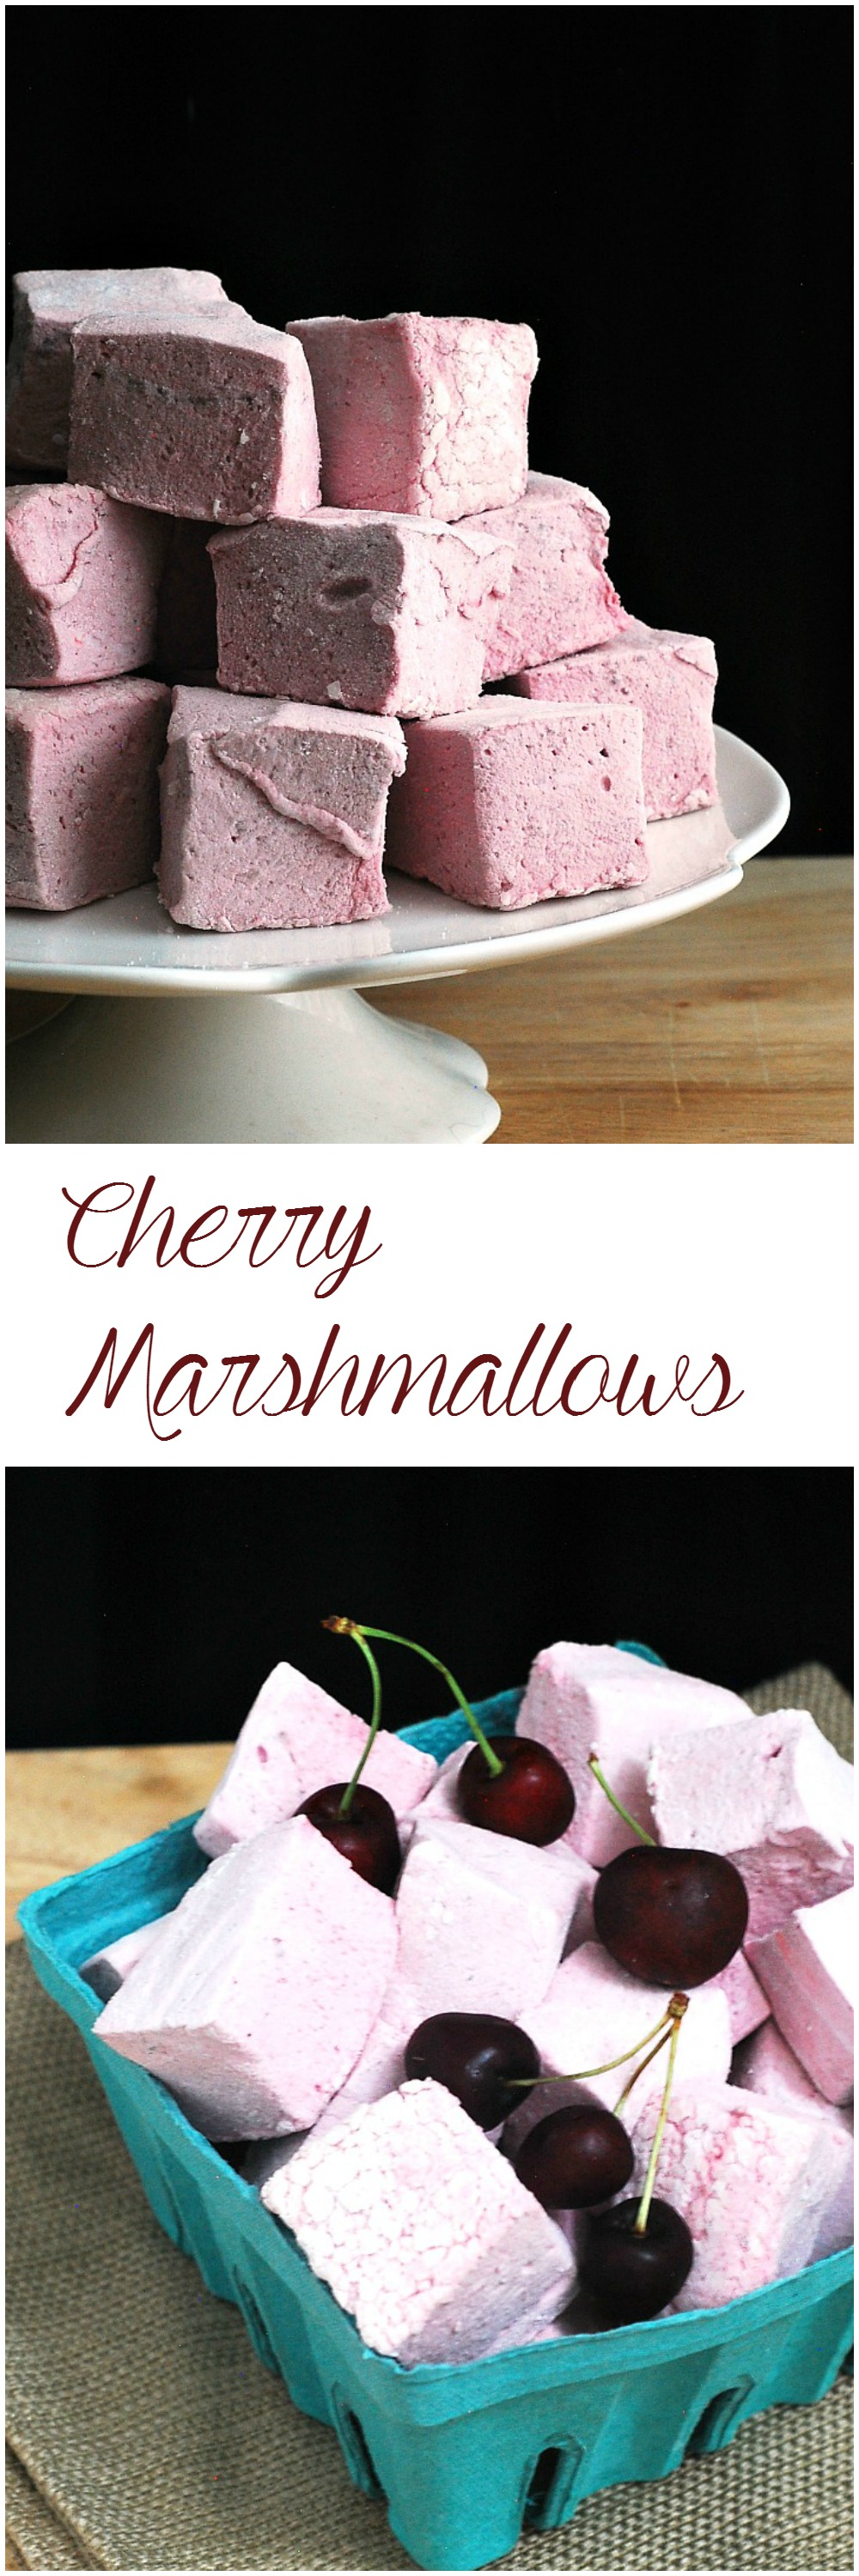 Homemade marshmallows are head and shoulders above store-bought. Fresh sweet cherry puree adds beautiful color and flavor to these marshmallows. By theredheadbaker.com